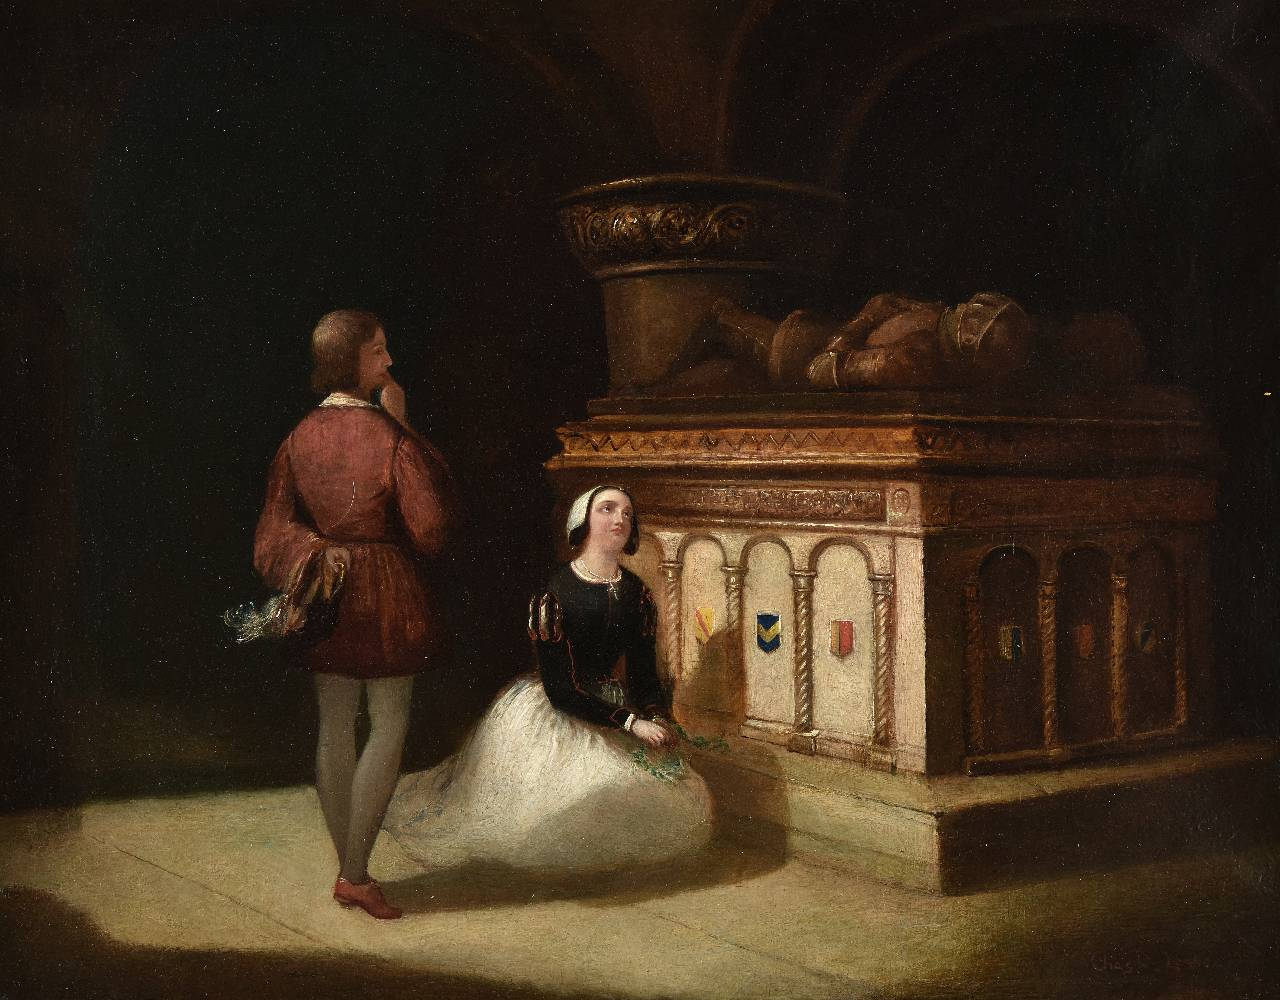 Lot 42 - *Leslie (Charles Robert, 1794-1859). At the Tomb, 1857, oil on canvas, signed Chas R. Leslie, and